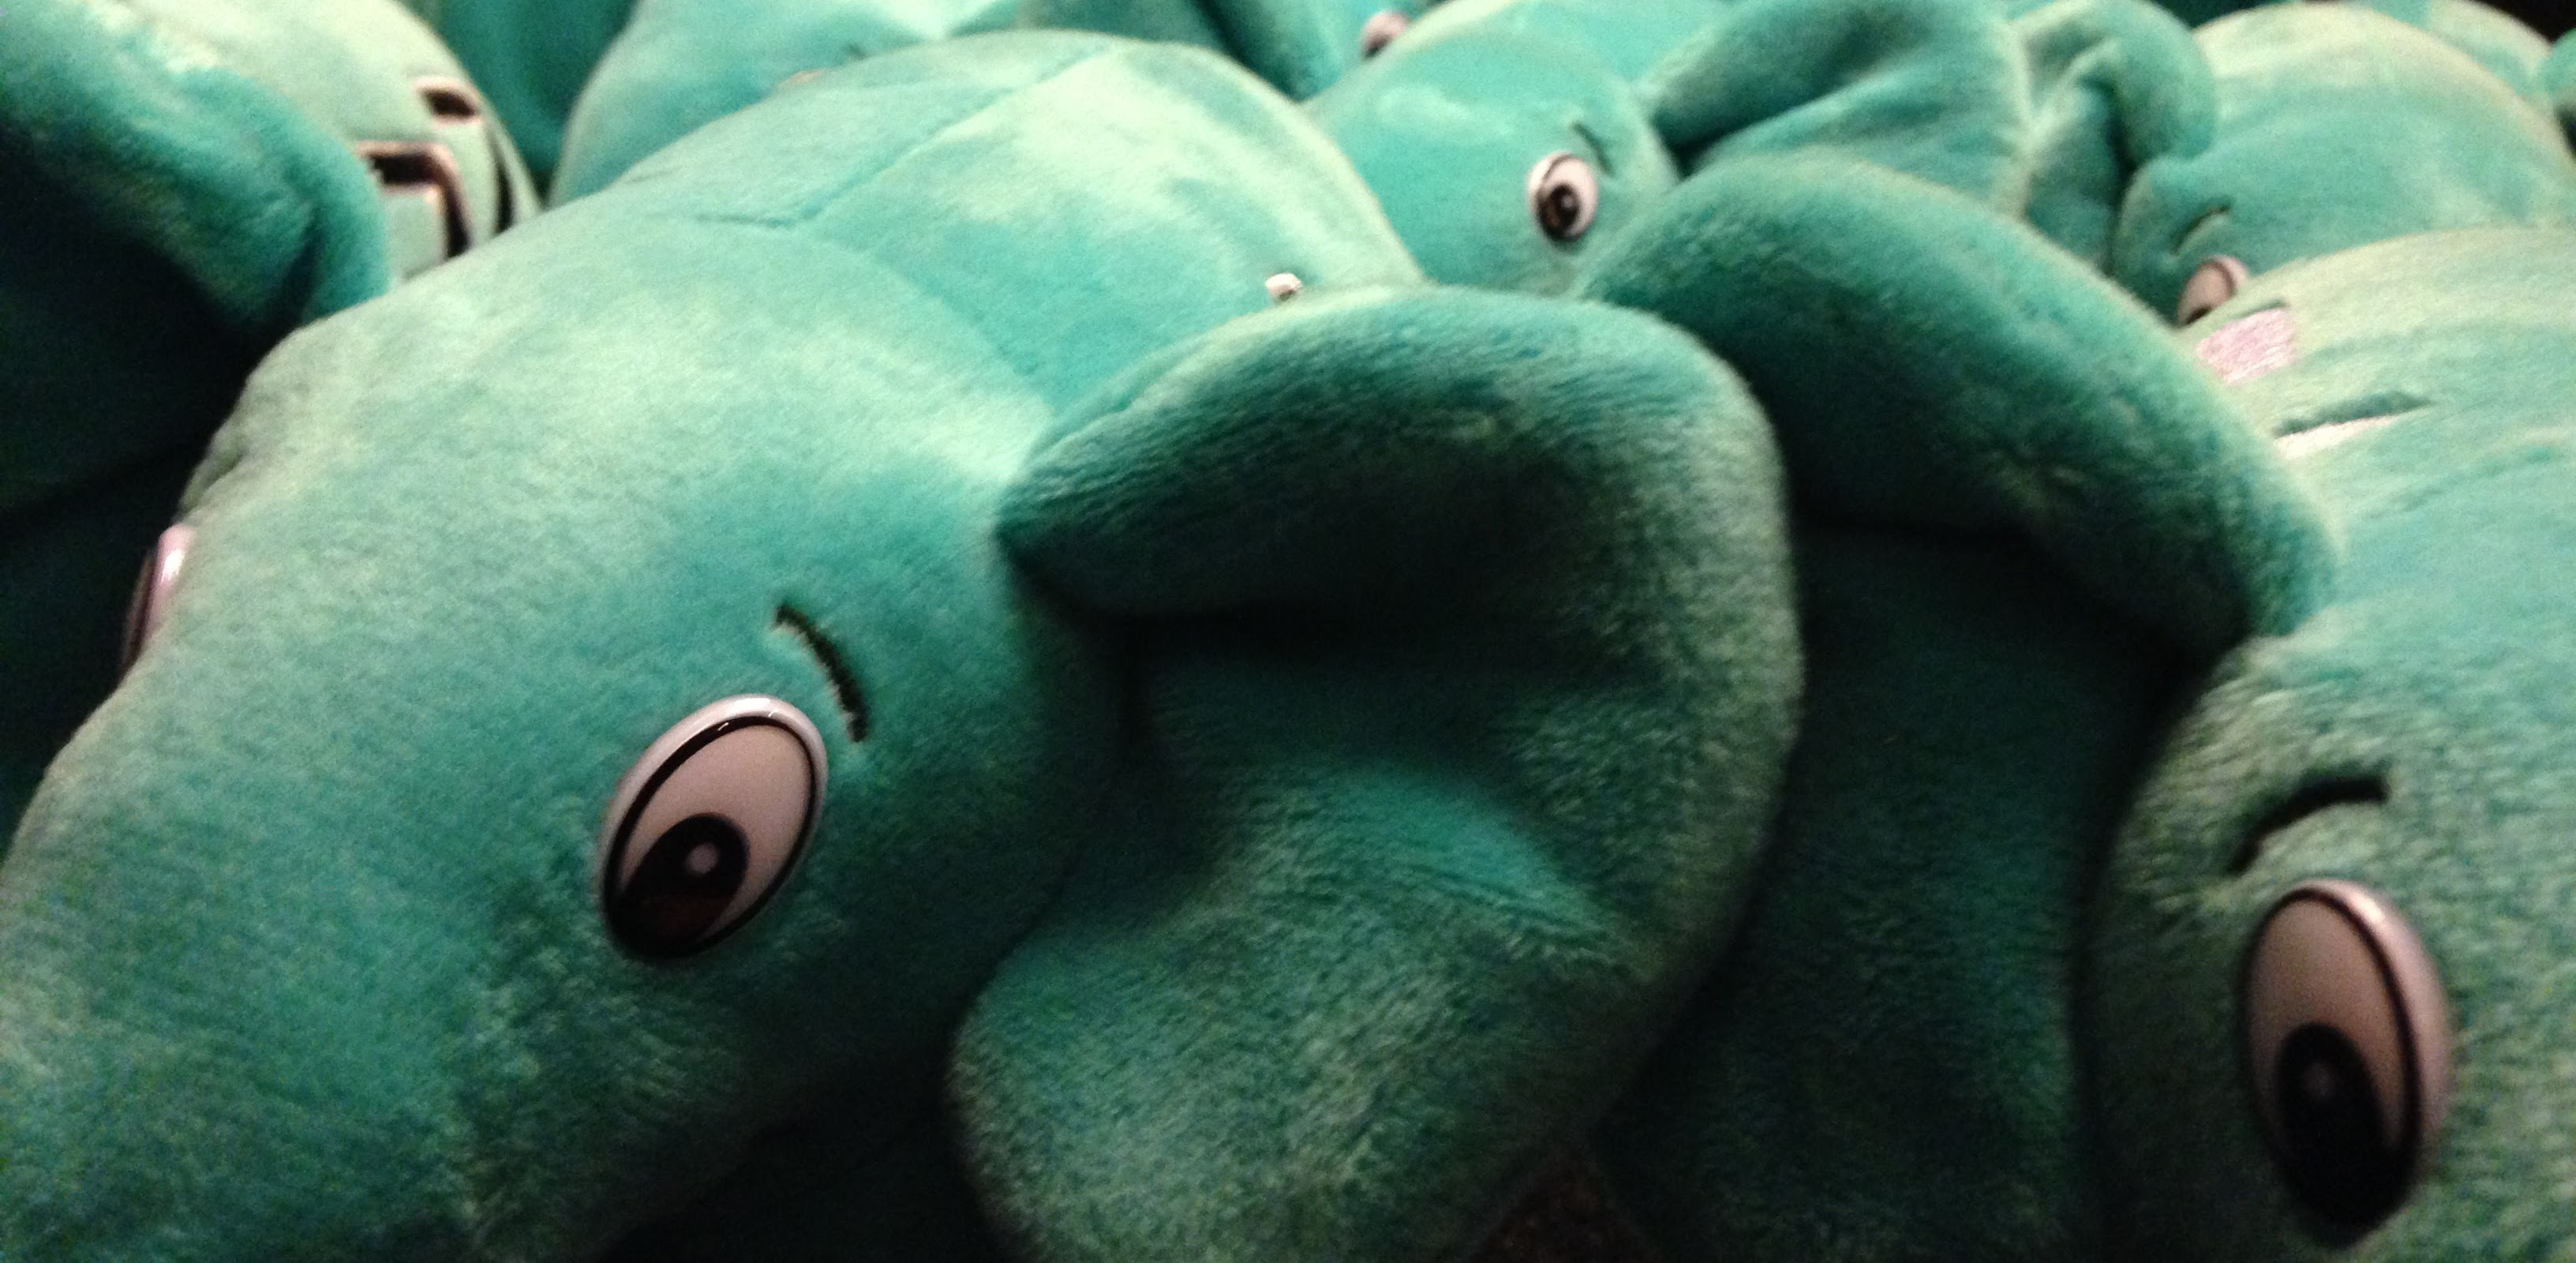 ElePHPant knowledge coming to you